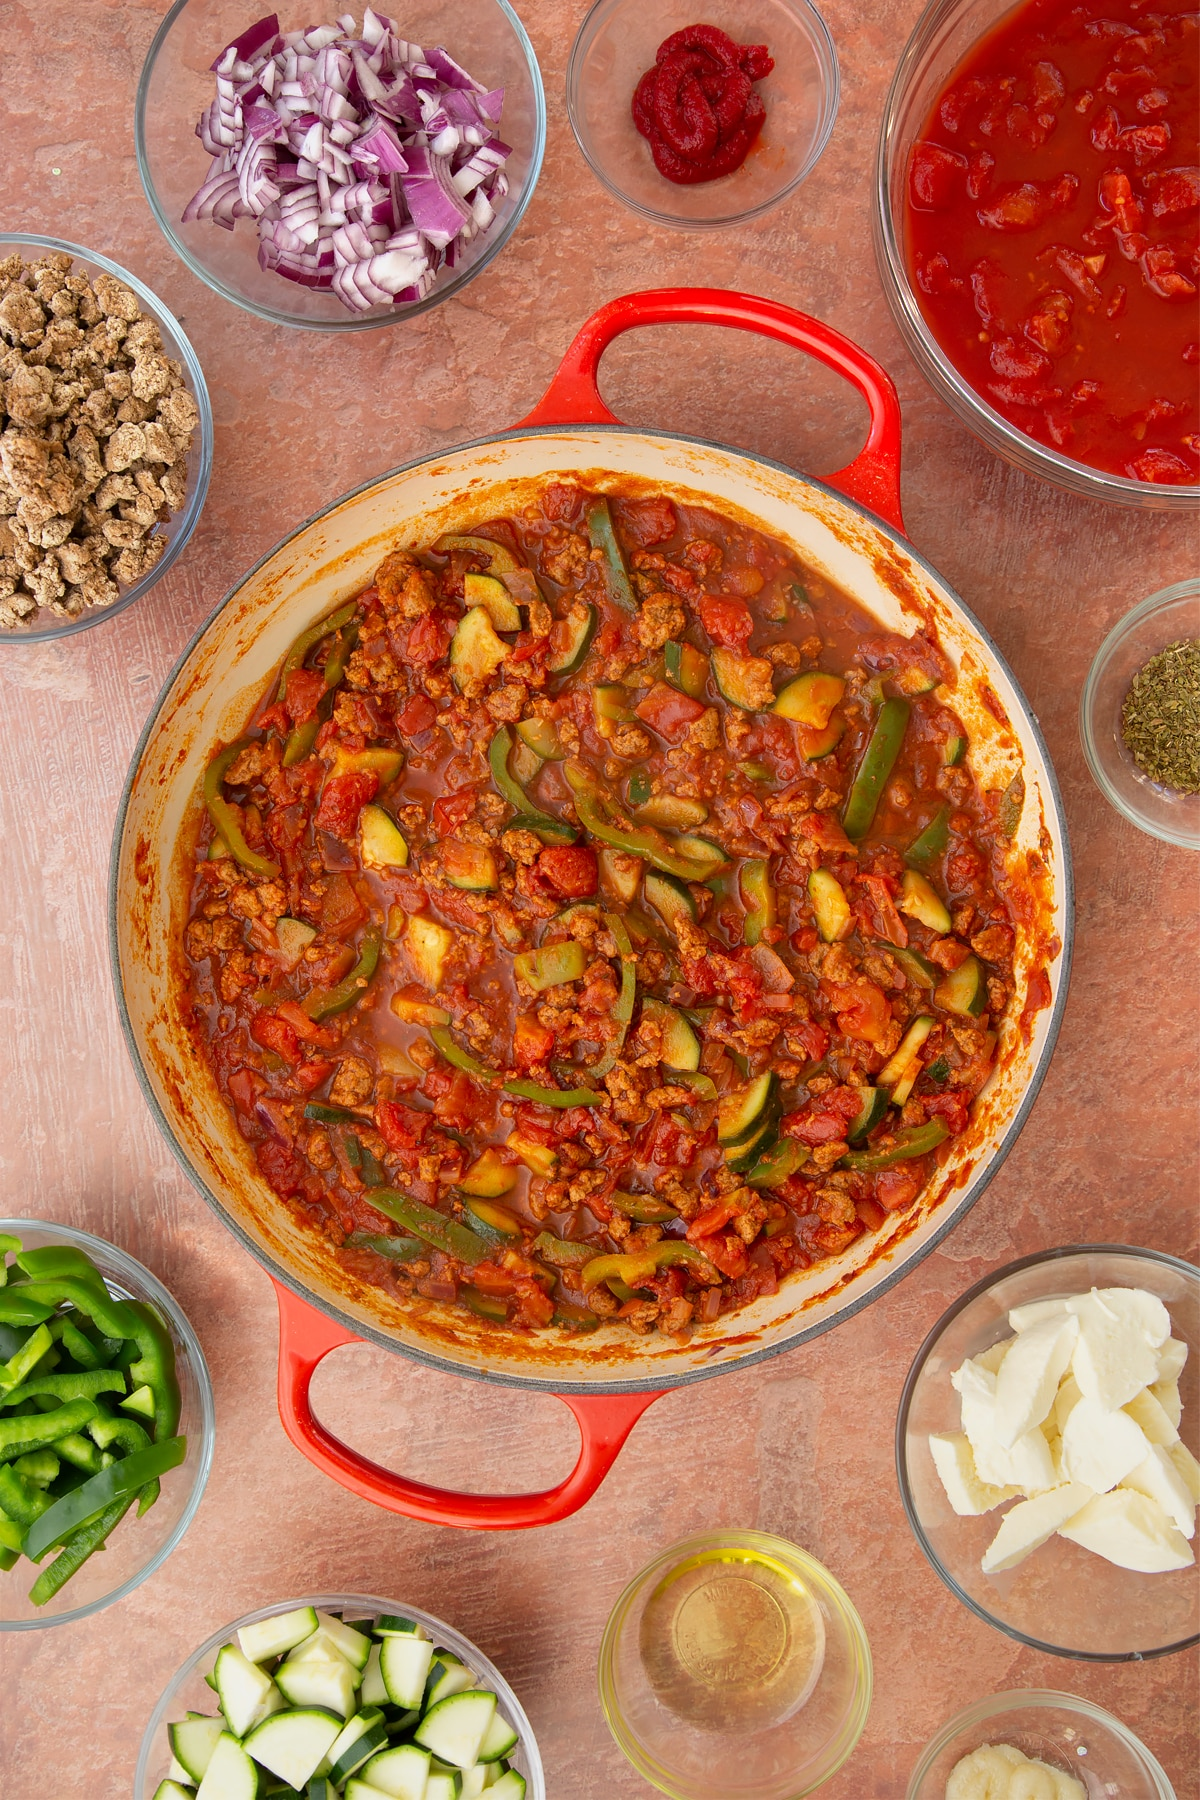 A casserole dish containing a bolognese sauce of red onion, garlic, sliced peppers, courgettes, mince, chopped tomatoes, tomato puree and dried oregano. Ingredients to make bolognese al forno surround the dish.